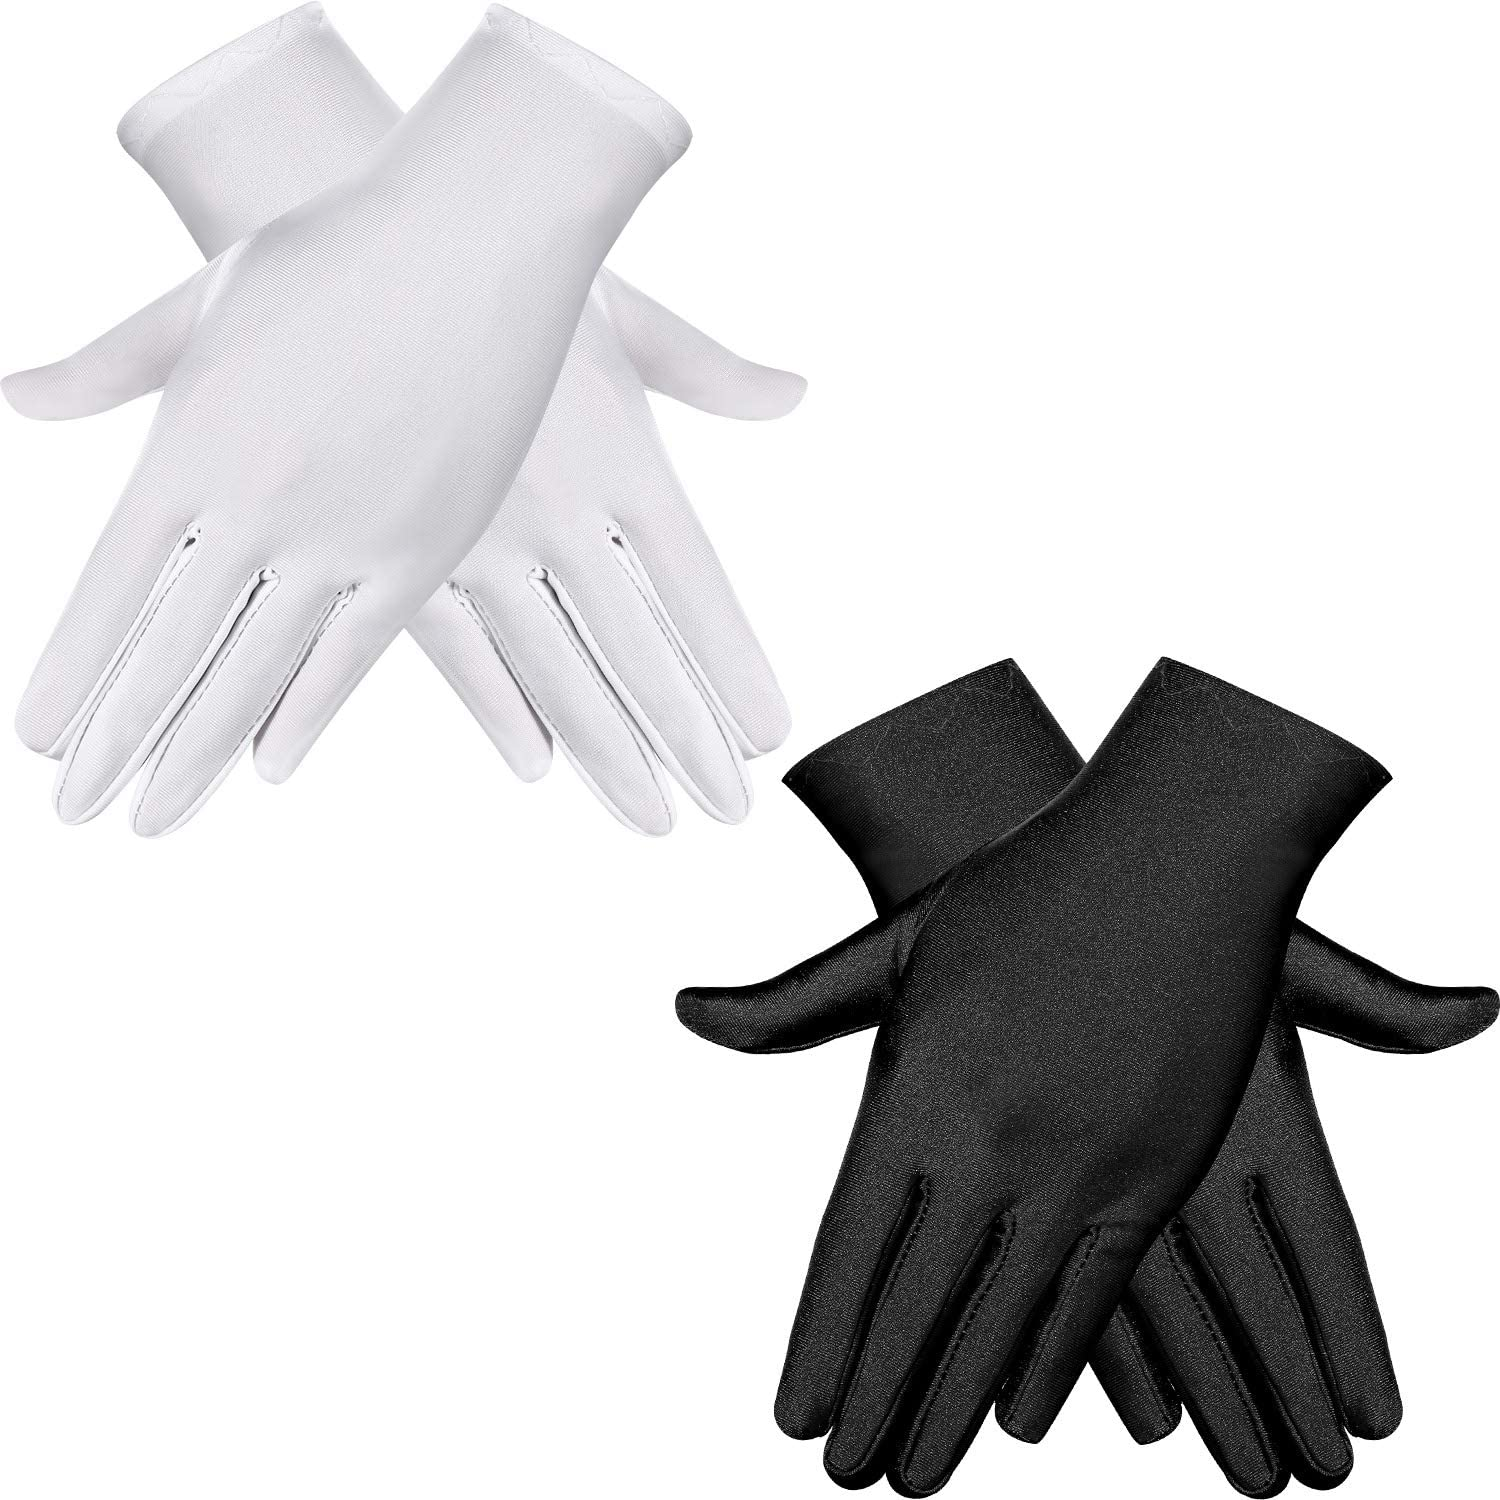 2 Pairs Adult Spandex Gloves Wrist Length Gloves Gown Opera Gloves Party Cosplay (White and Black): Clothing